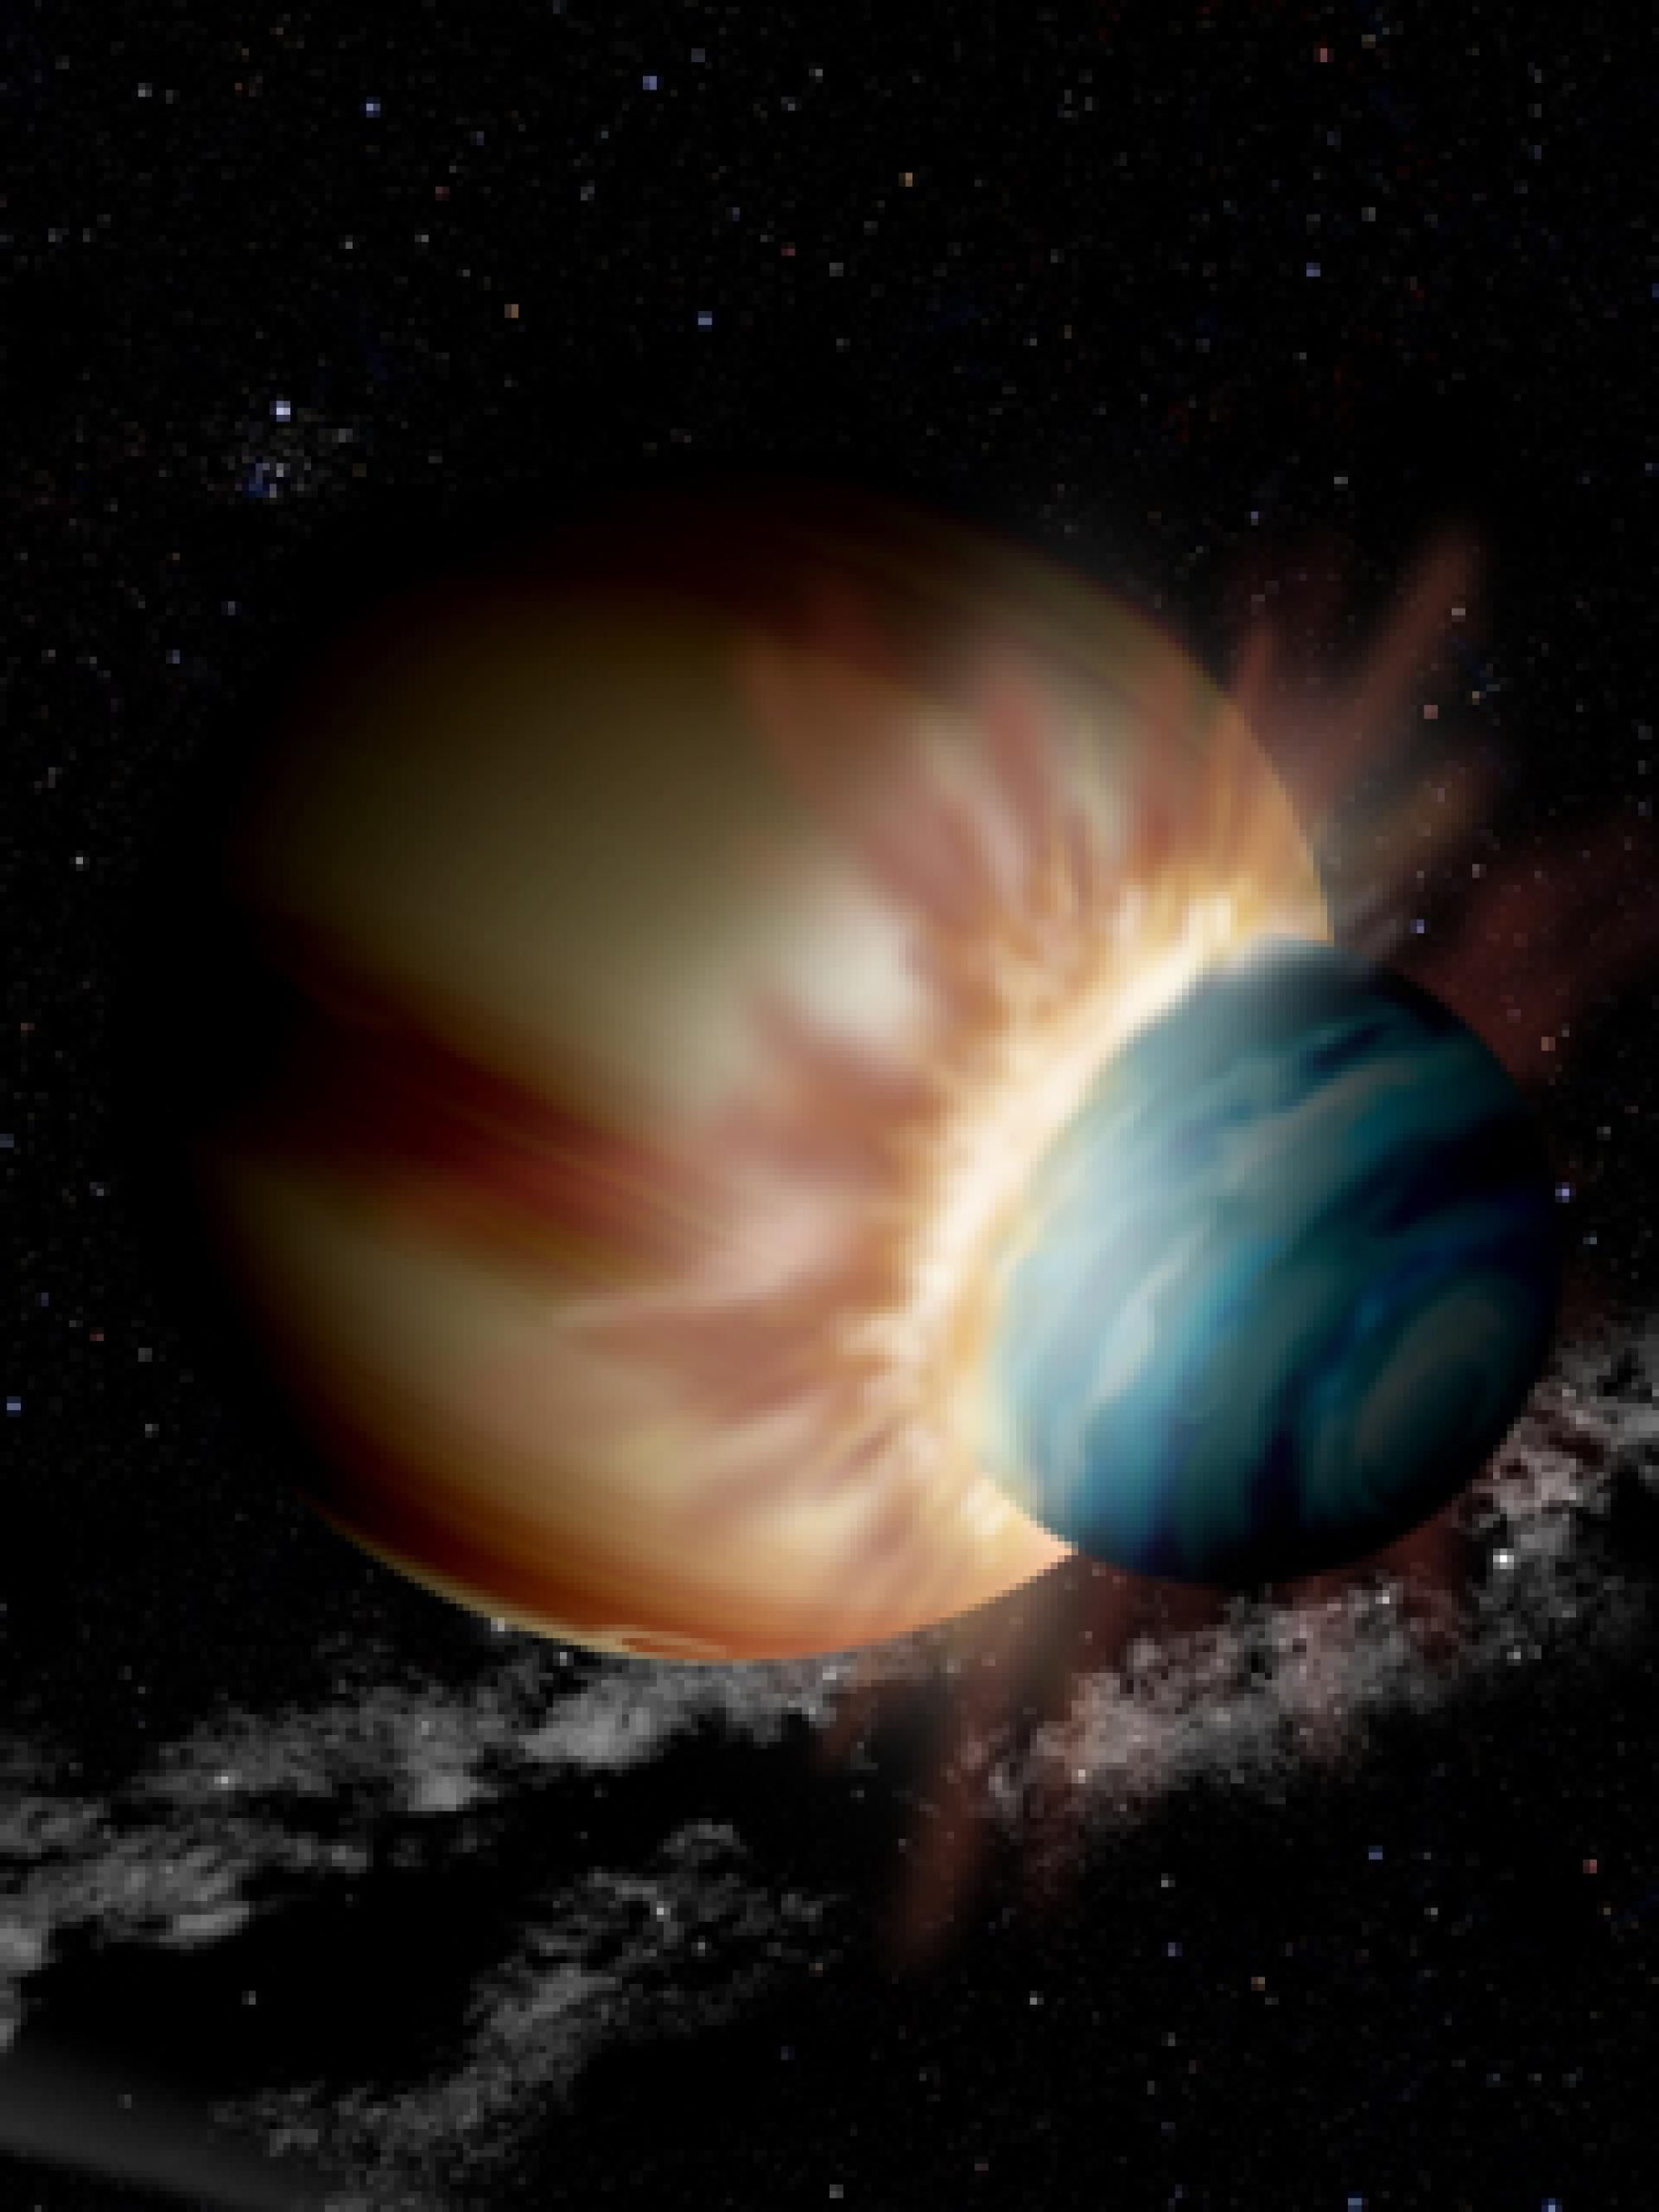 Artist's concept of colliding protoplanets.